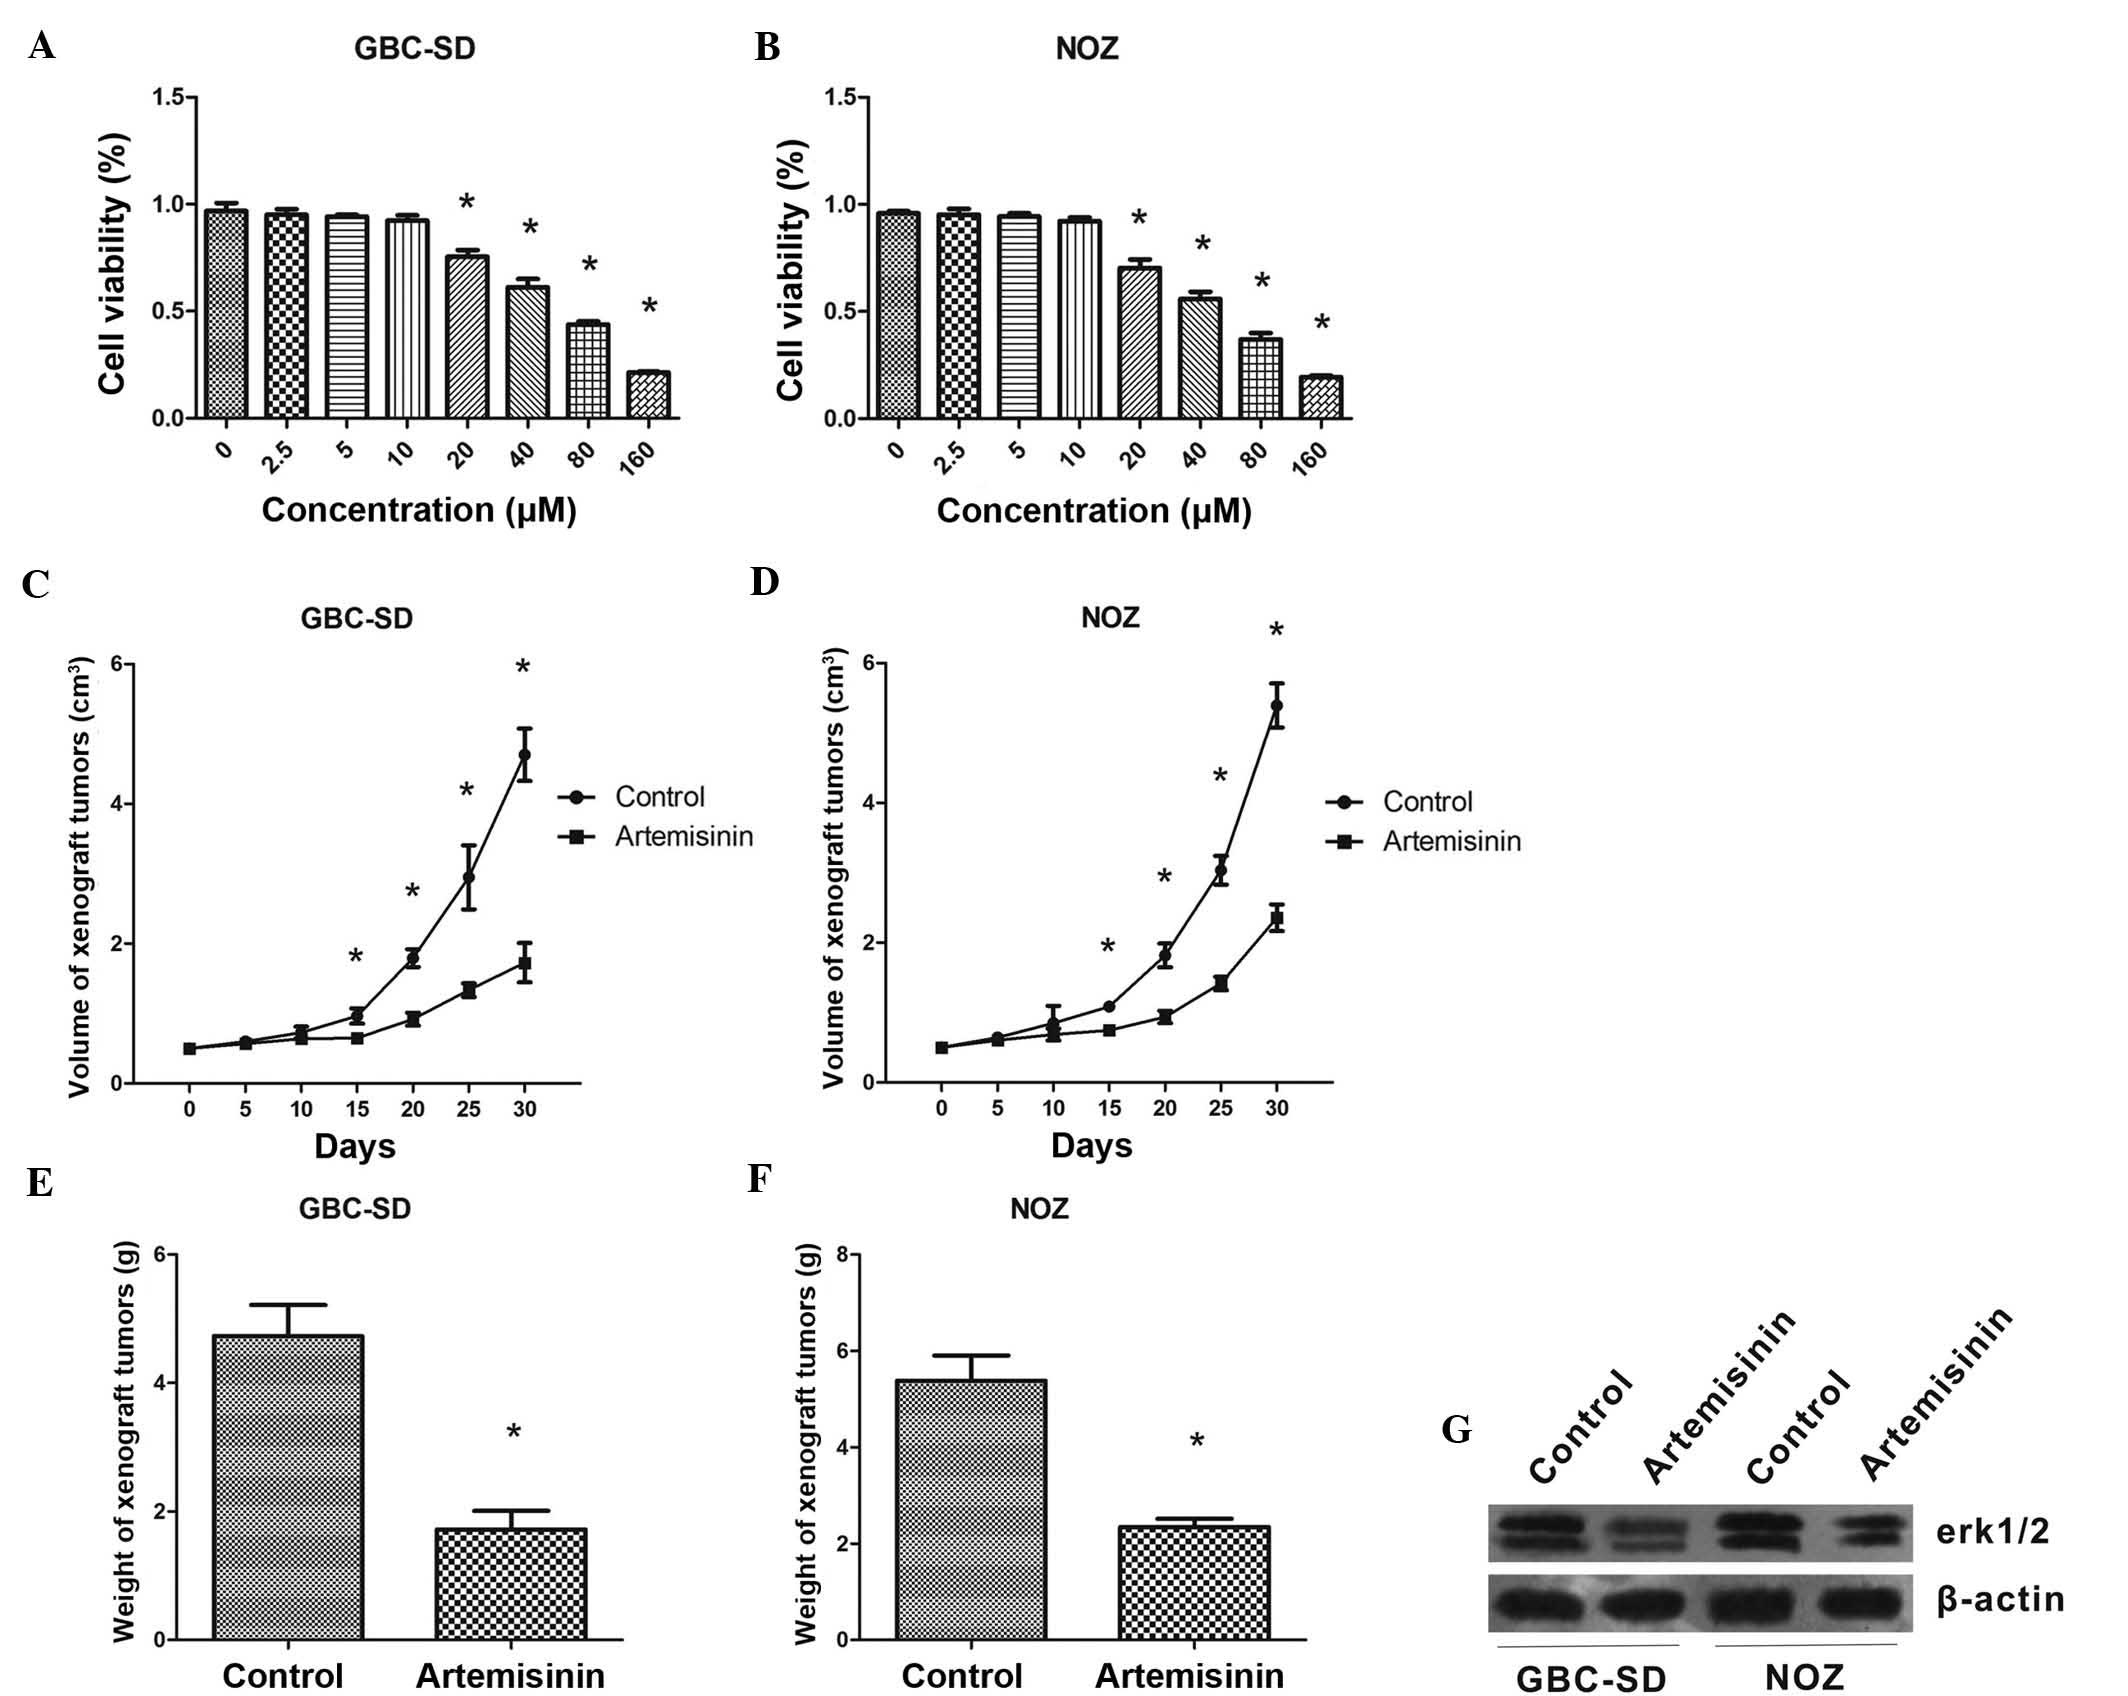 Artemisinin Inhibits Gallbladder Cancer Cell Lines Through Triggering Cell Cycle Arrest And Apoptosis